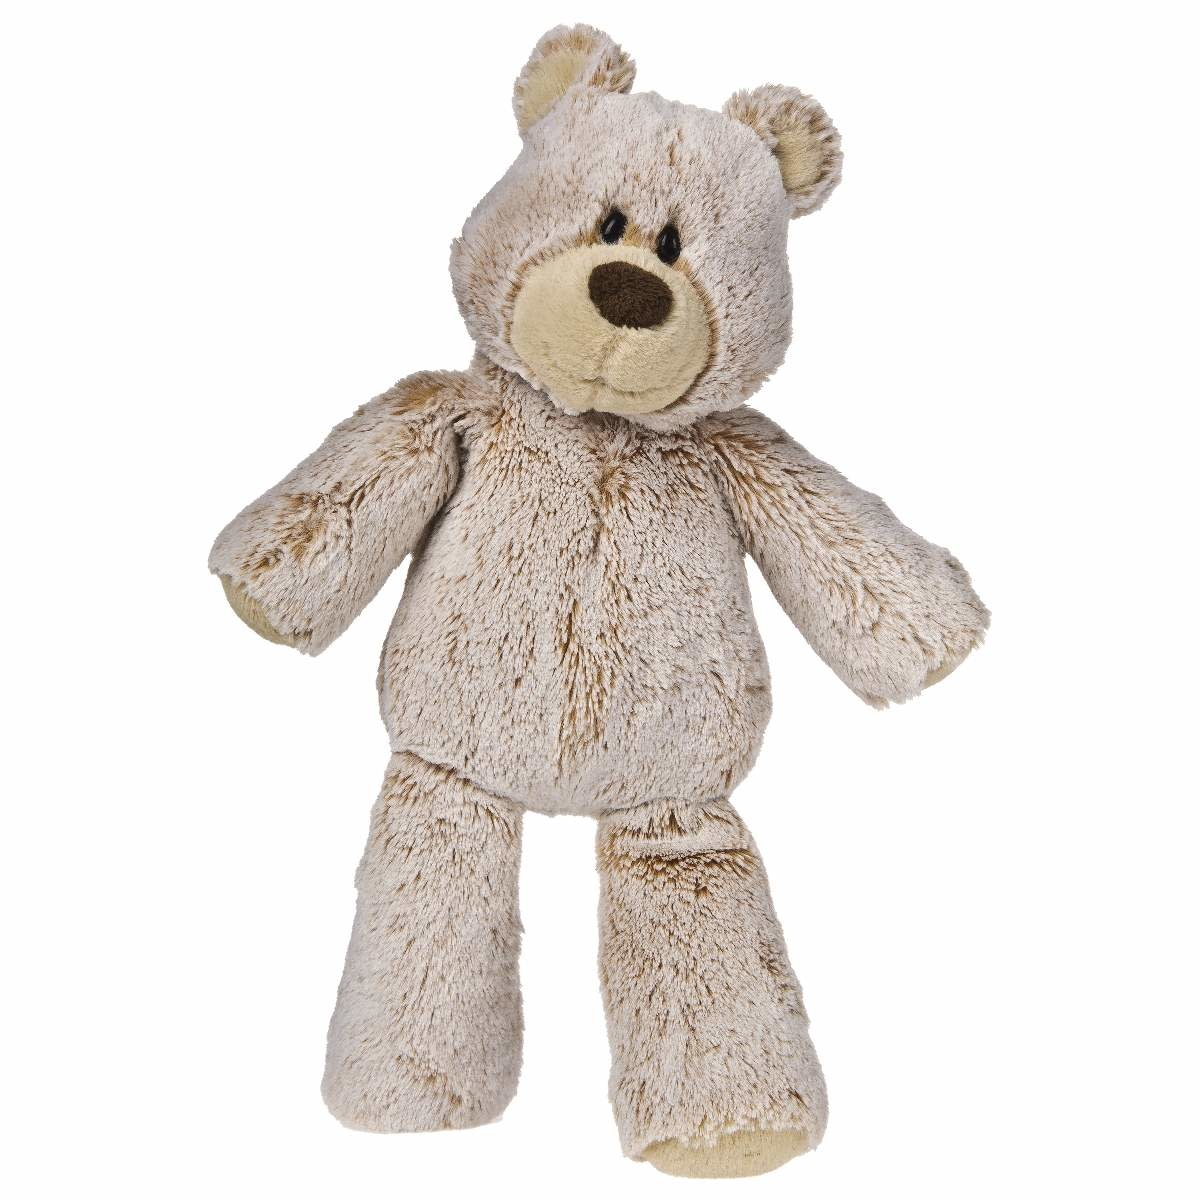 Mary Meyer Baby Mary Meyer Marshmallow Teddy 13""